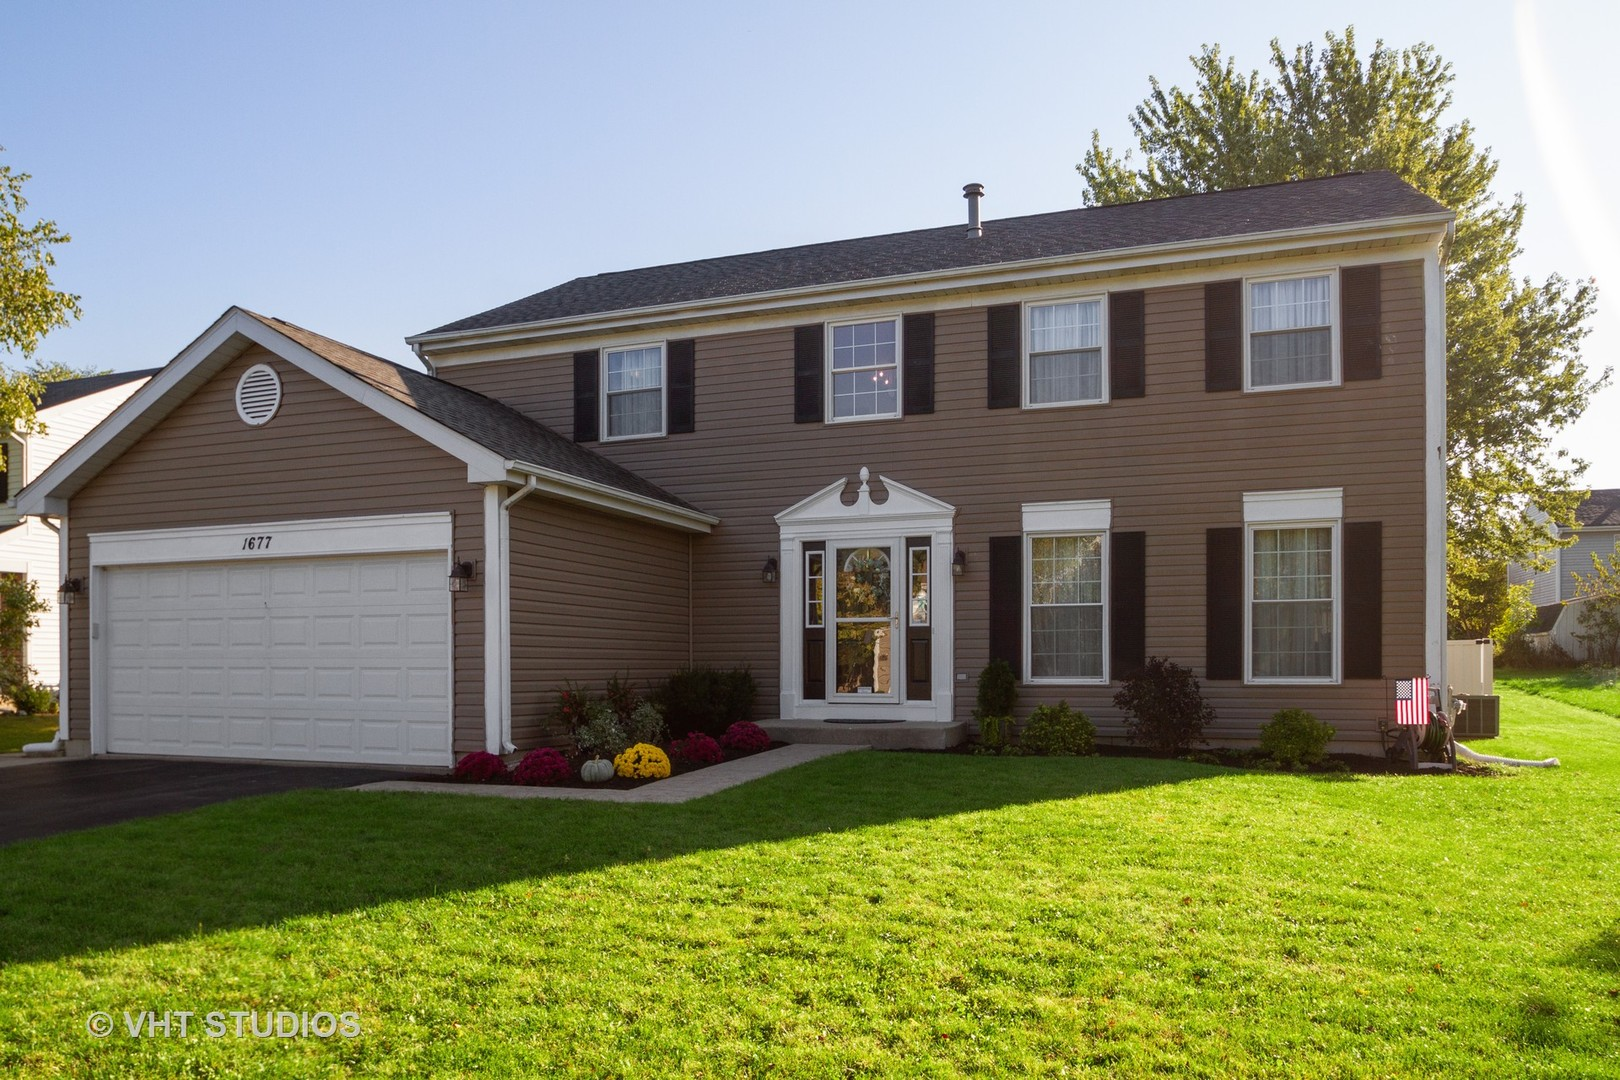 Photo for 1677 Deerhaven Drive, Crystal Lake, IL 60014 (MLS # 10539975)